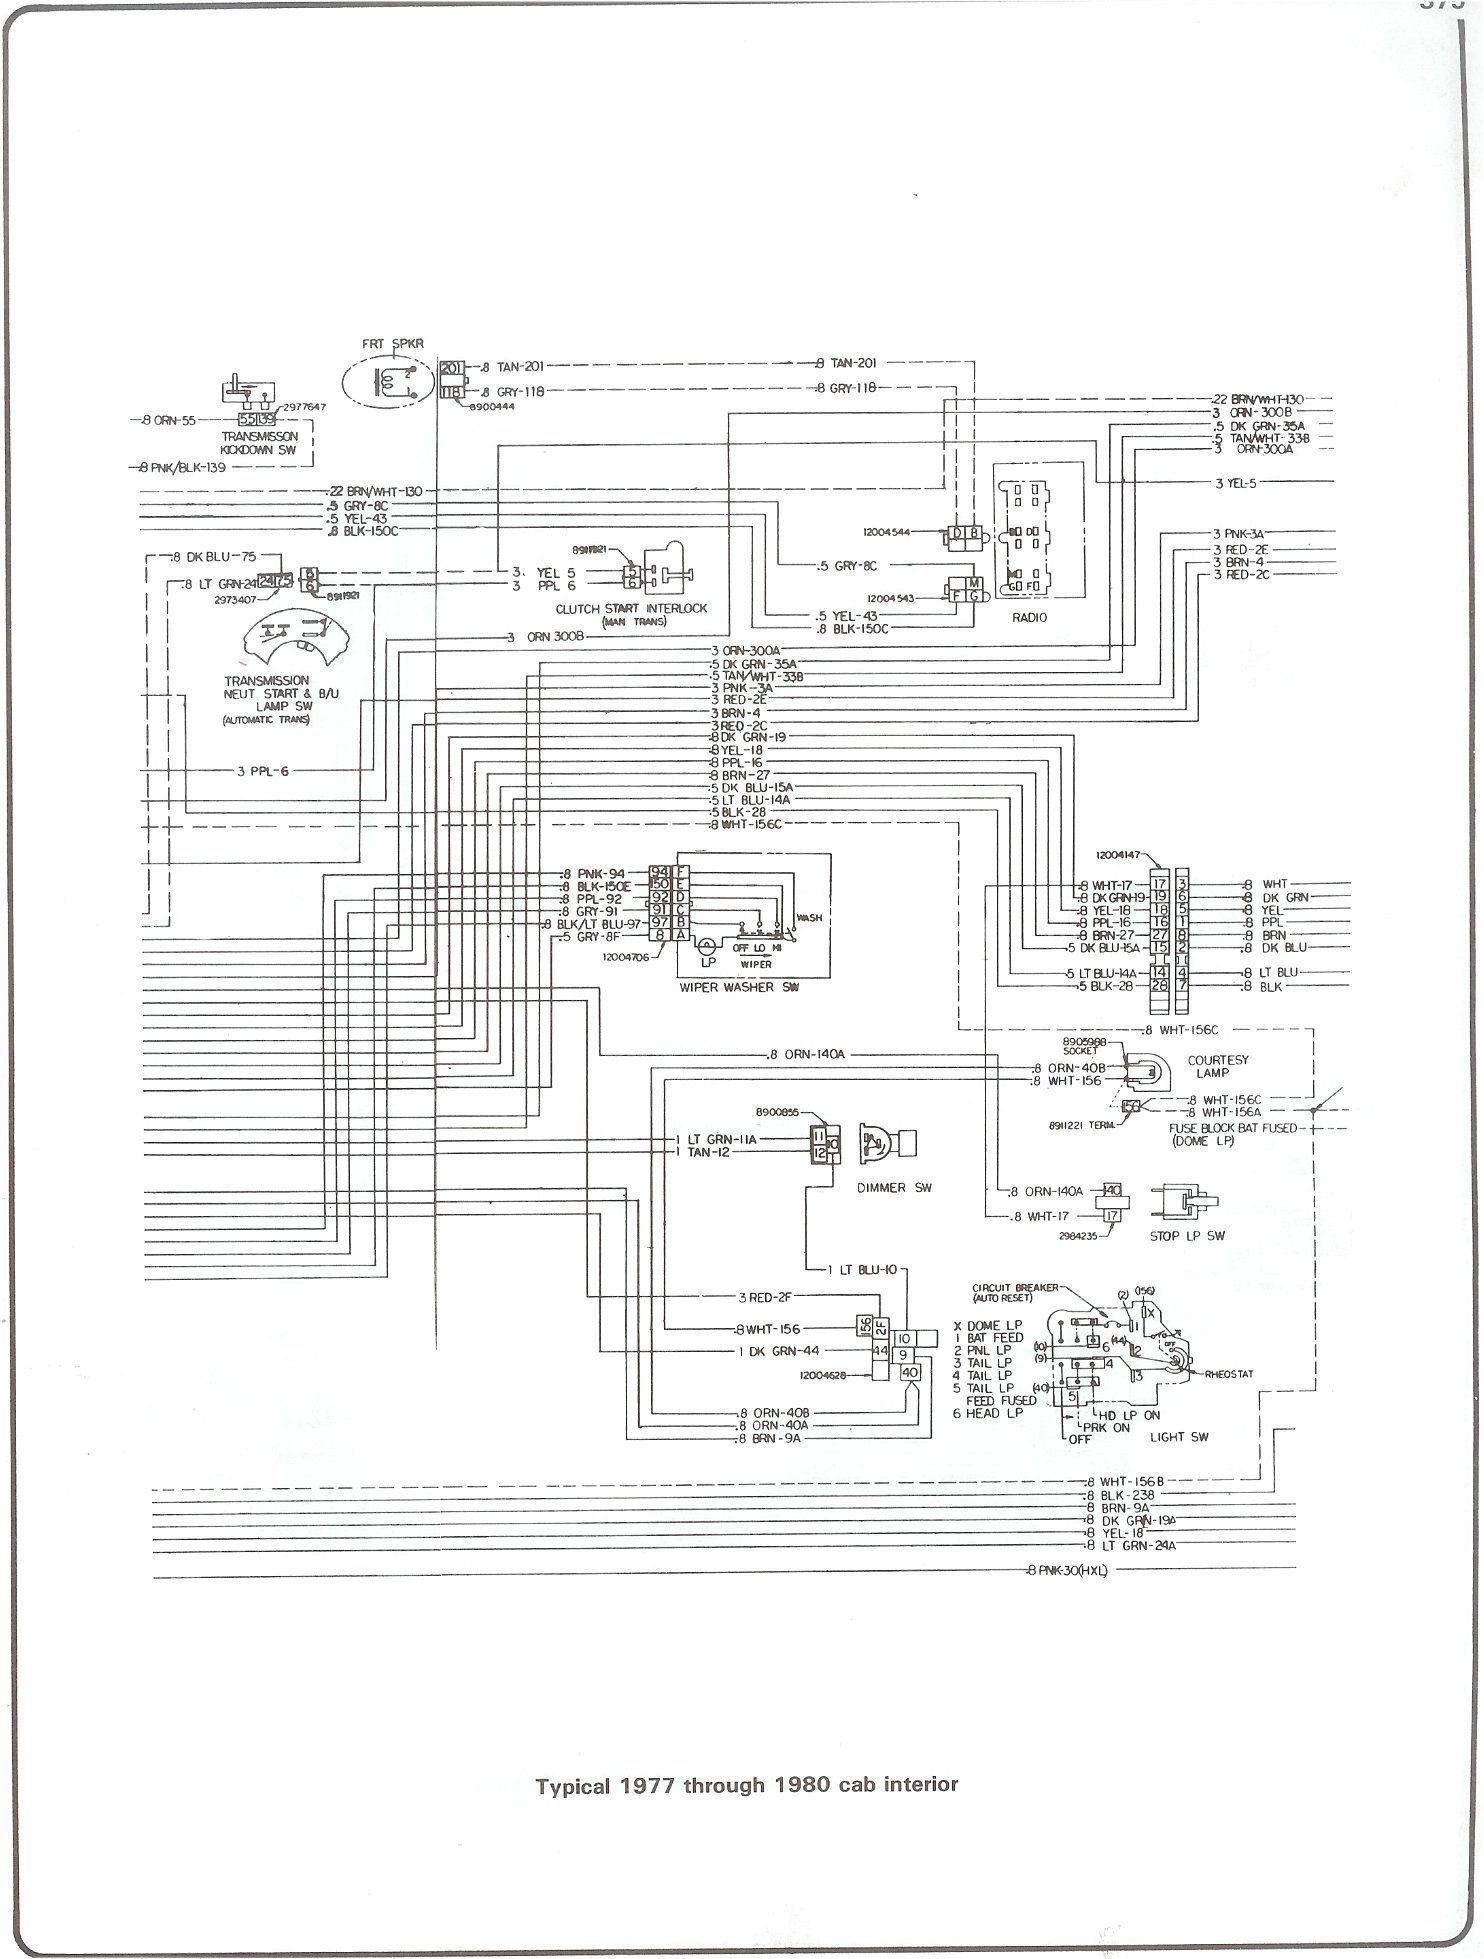 77 80_cab_inter chevy truck underhood wiring diagrams chuck's chevy truck pages wiring diagram for 1970 chevy c10 at gsmx.co